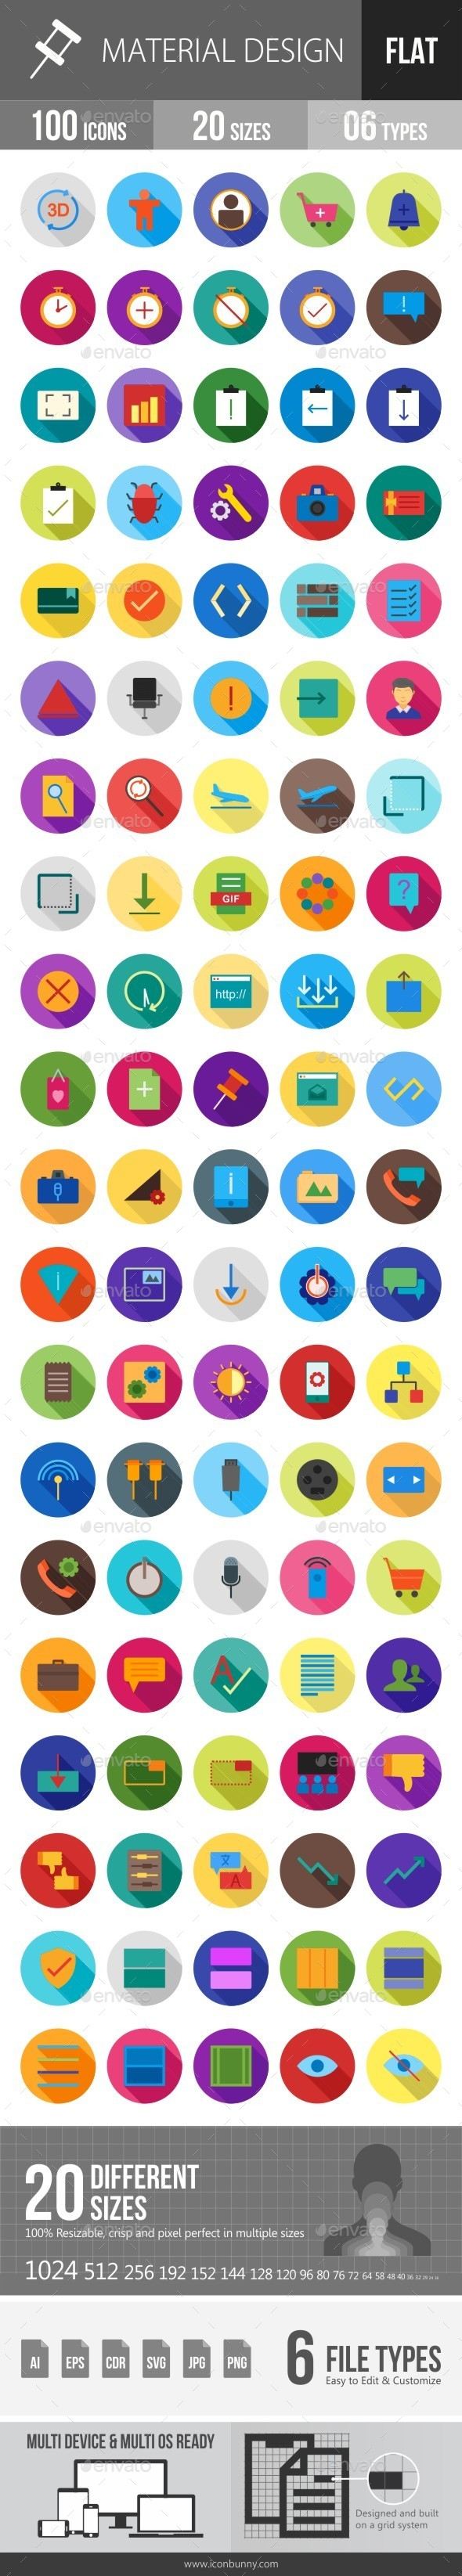 Material Design Flat Shadowed Icons - Icons